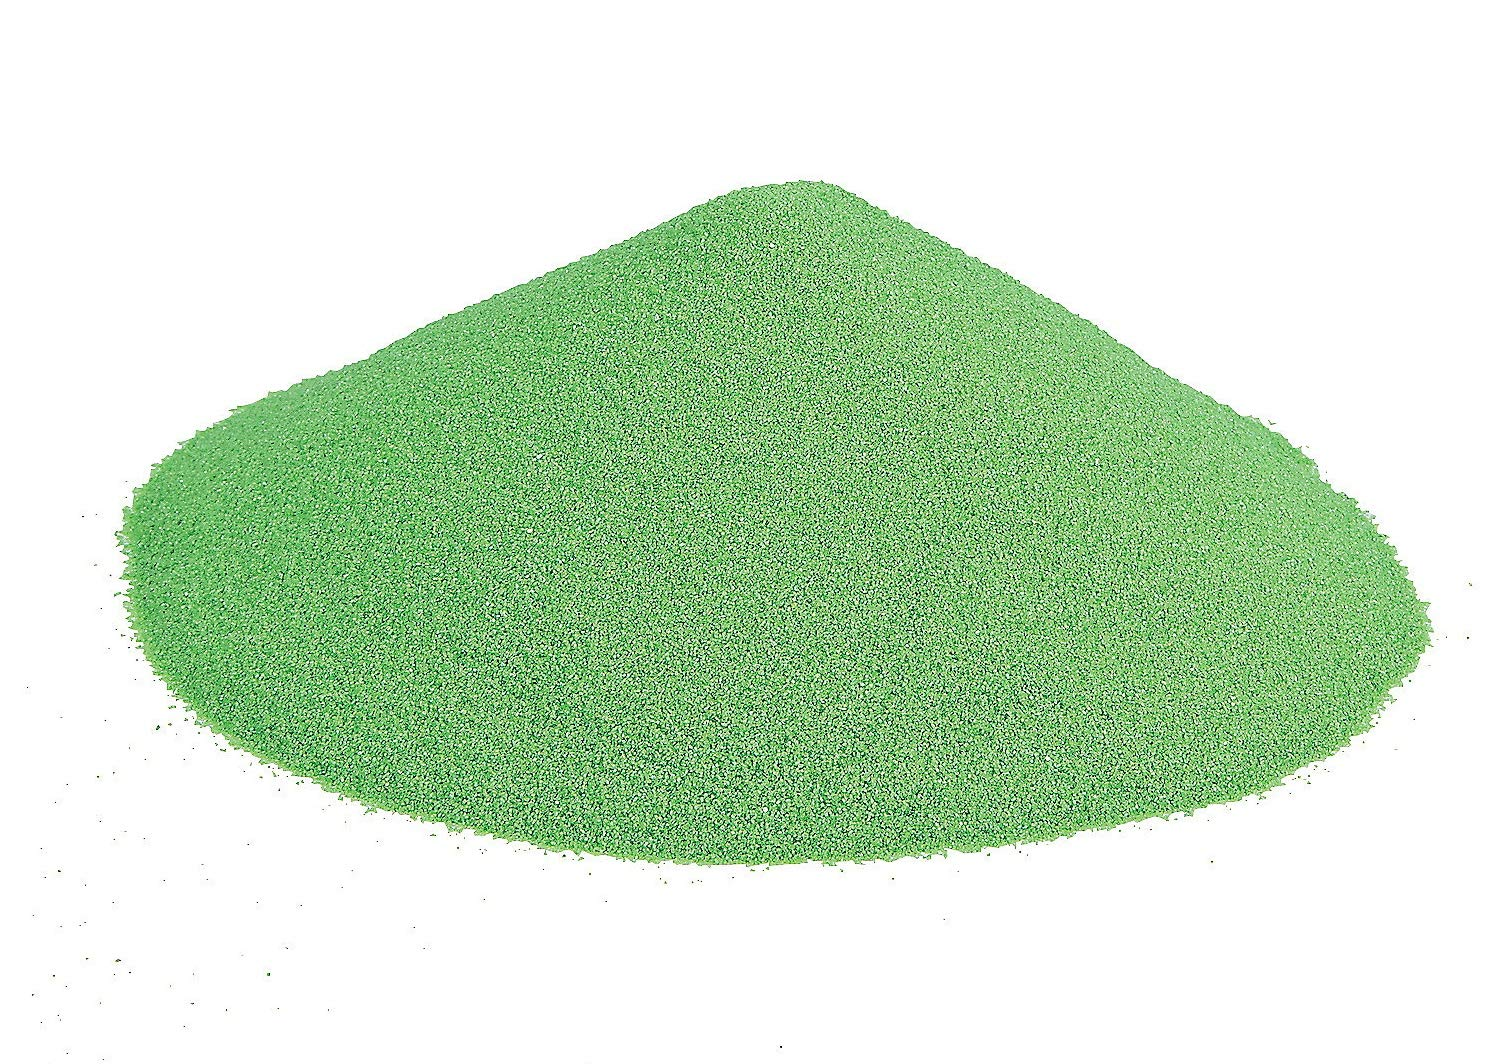 Arts /& Crafts 5 Lbs. Zugar Land Bulk Green Sand